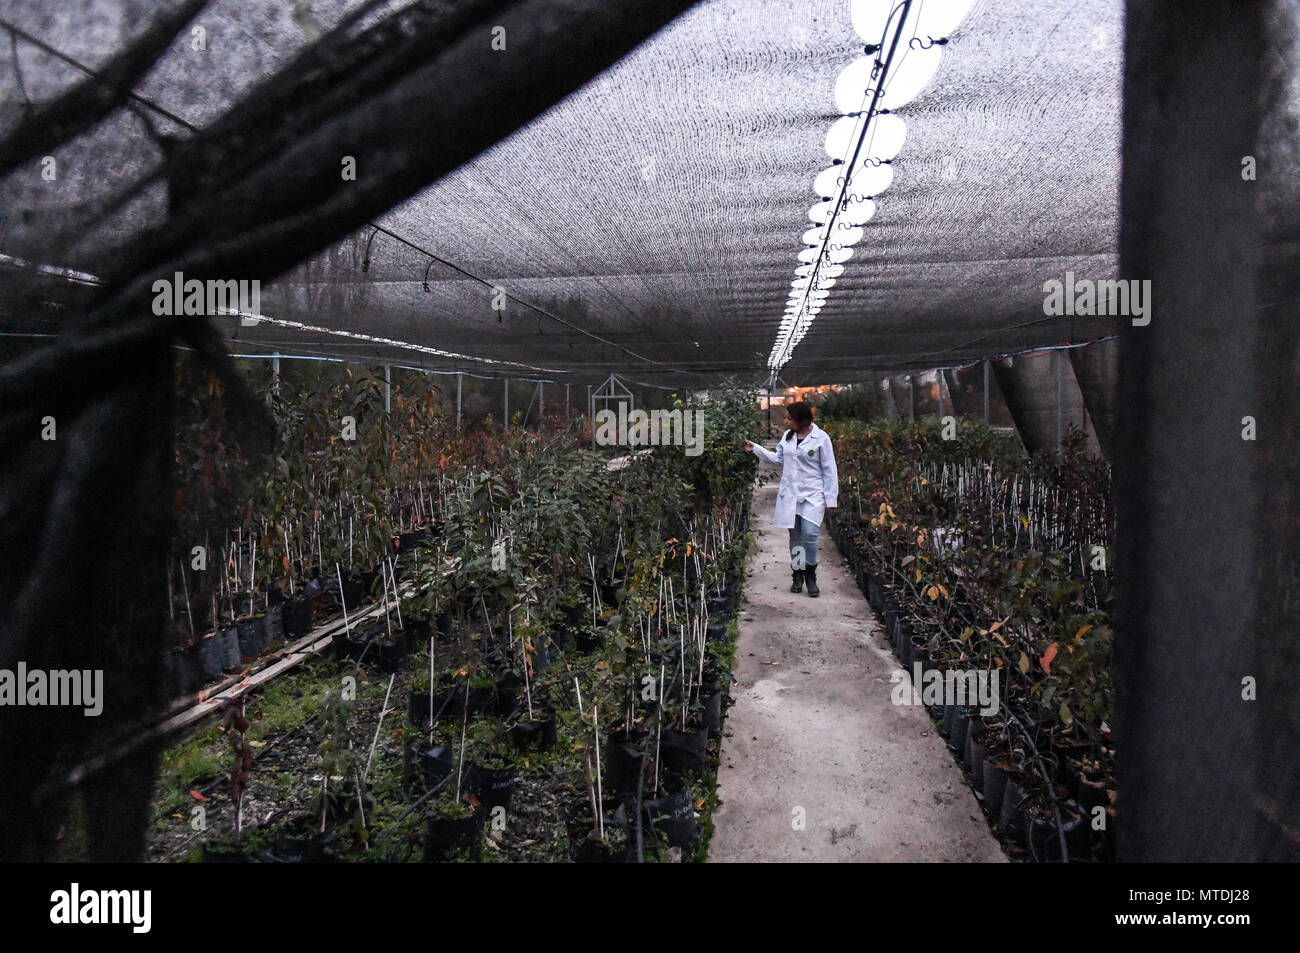 A Scientist Works In Greenhouse At The Center For Advanced Studies Fruit Cultivation CEAF Rengo Chile On May 14 2018